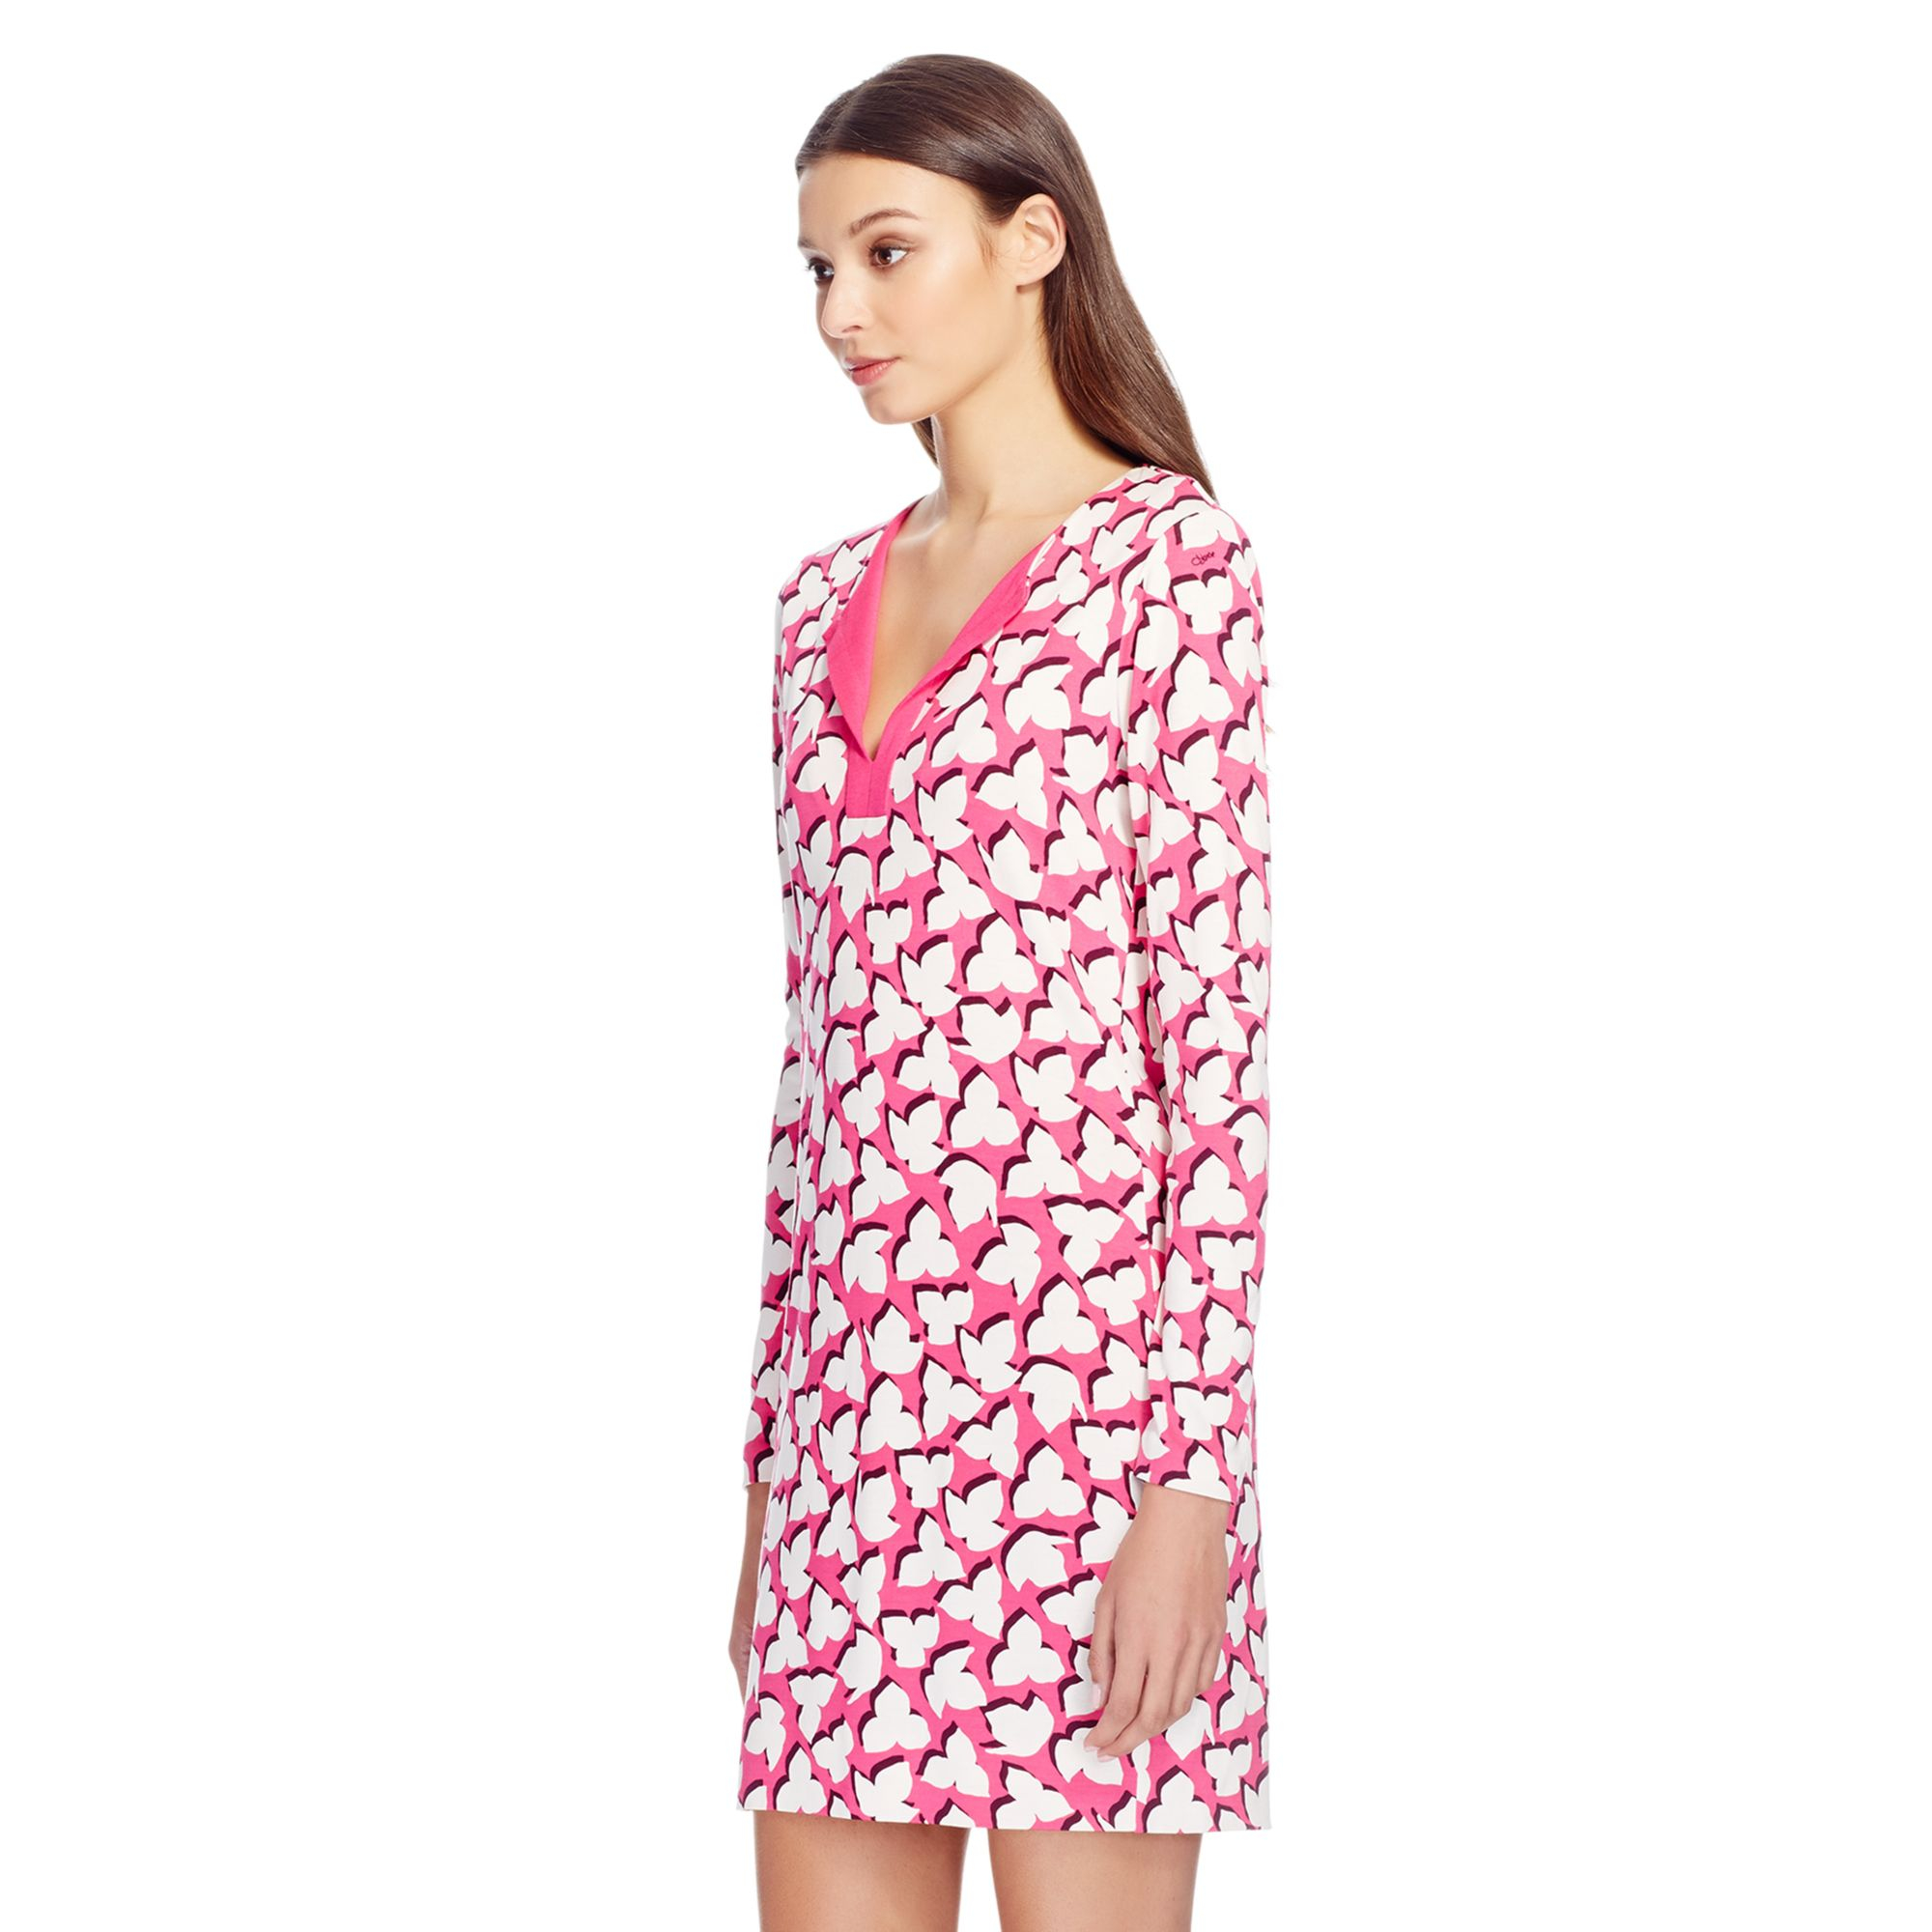 Lyst diane von furstenberg reina silk jersey tunic dress for Diane von furstenberg clothes